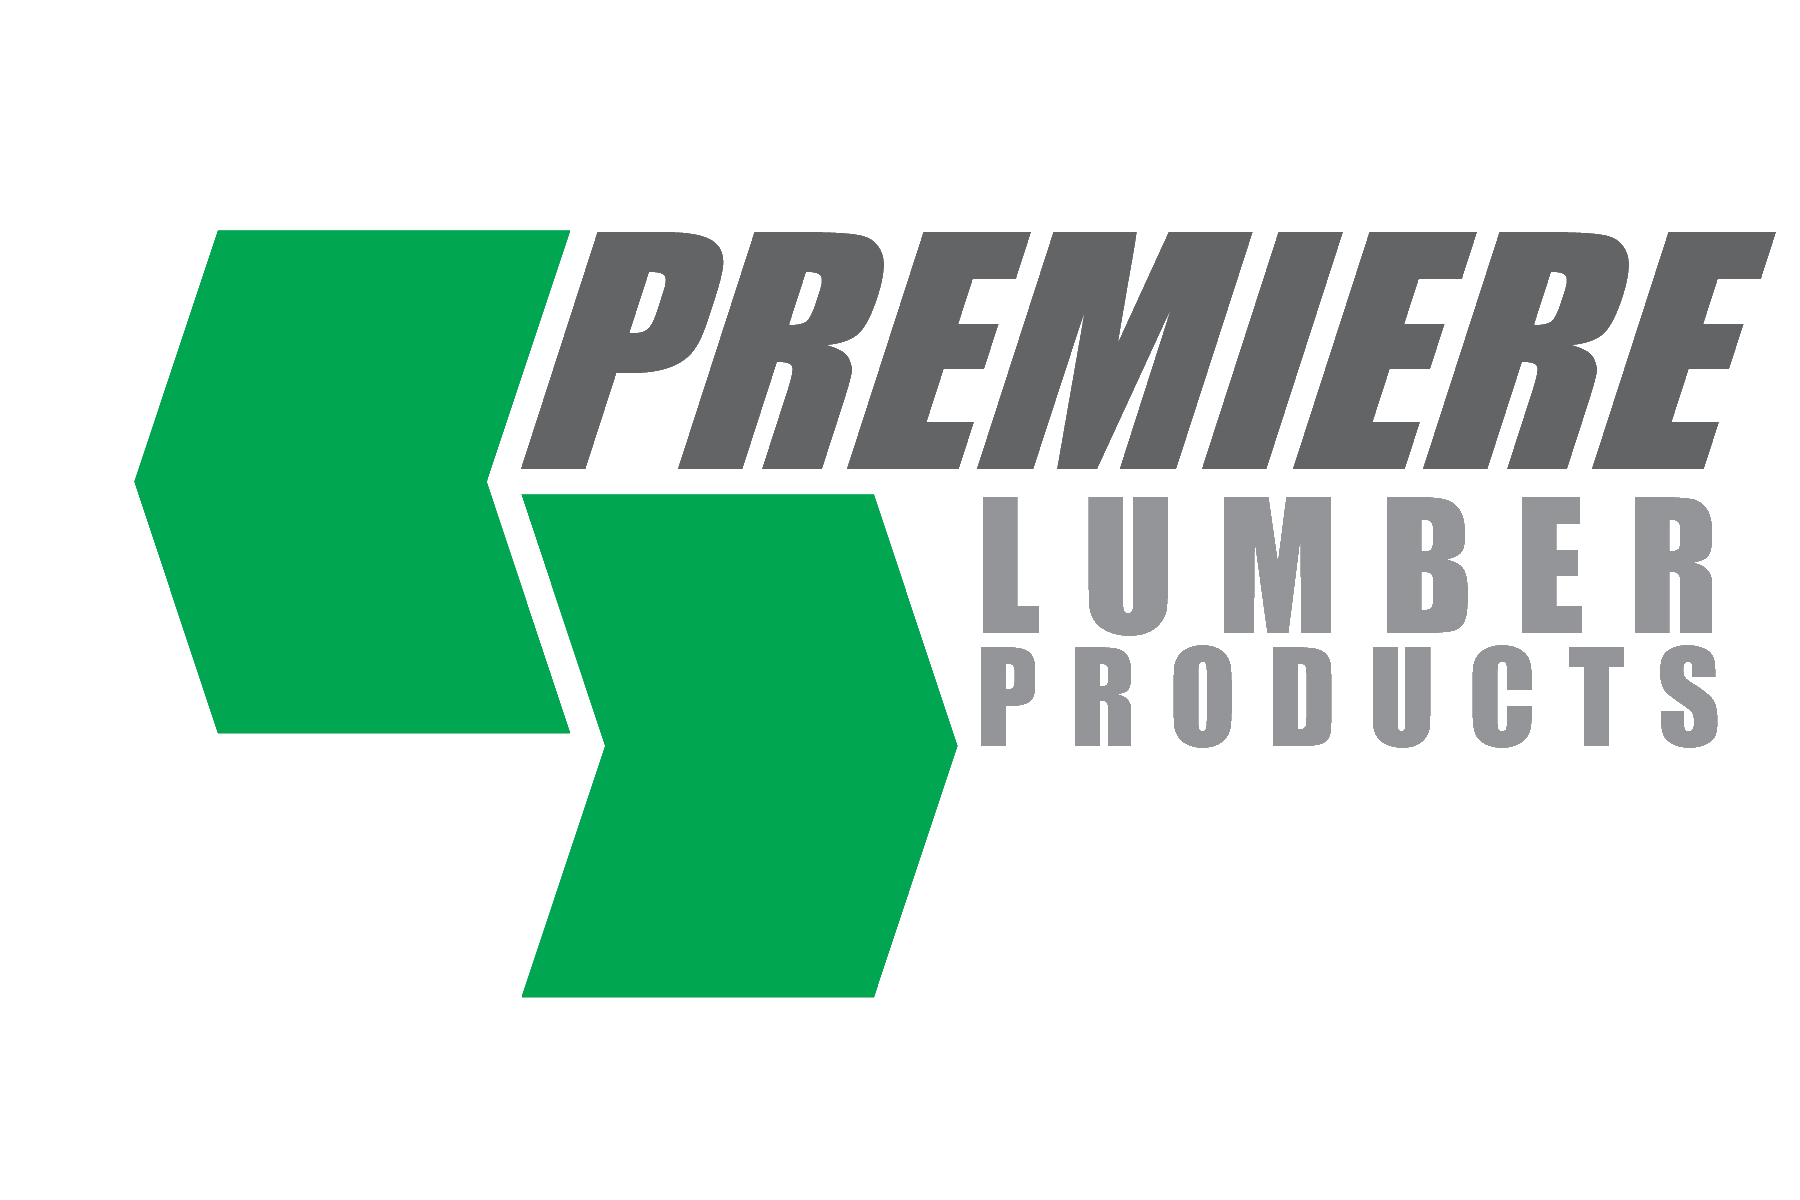 premiere lumber products